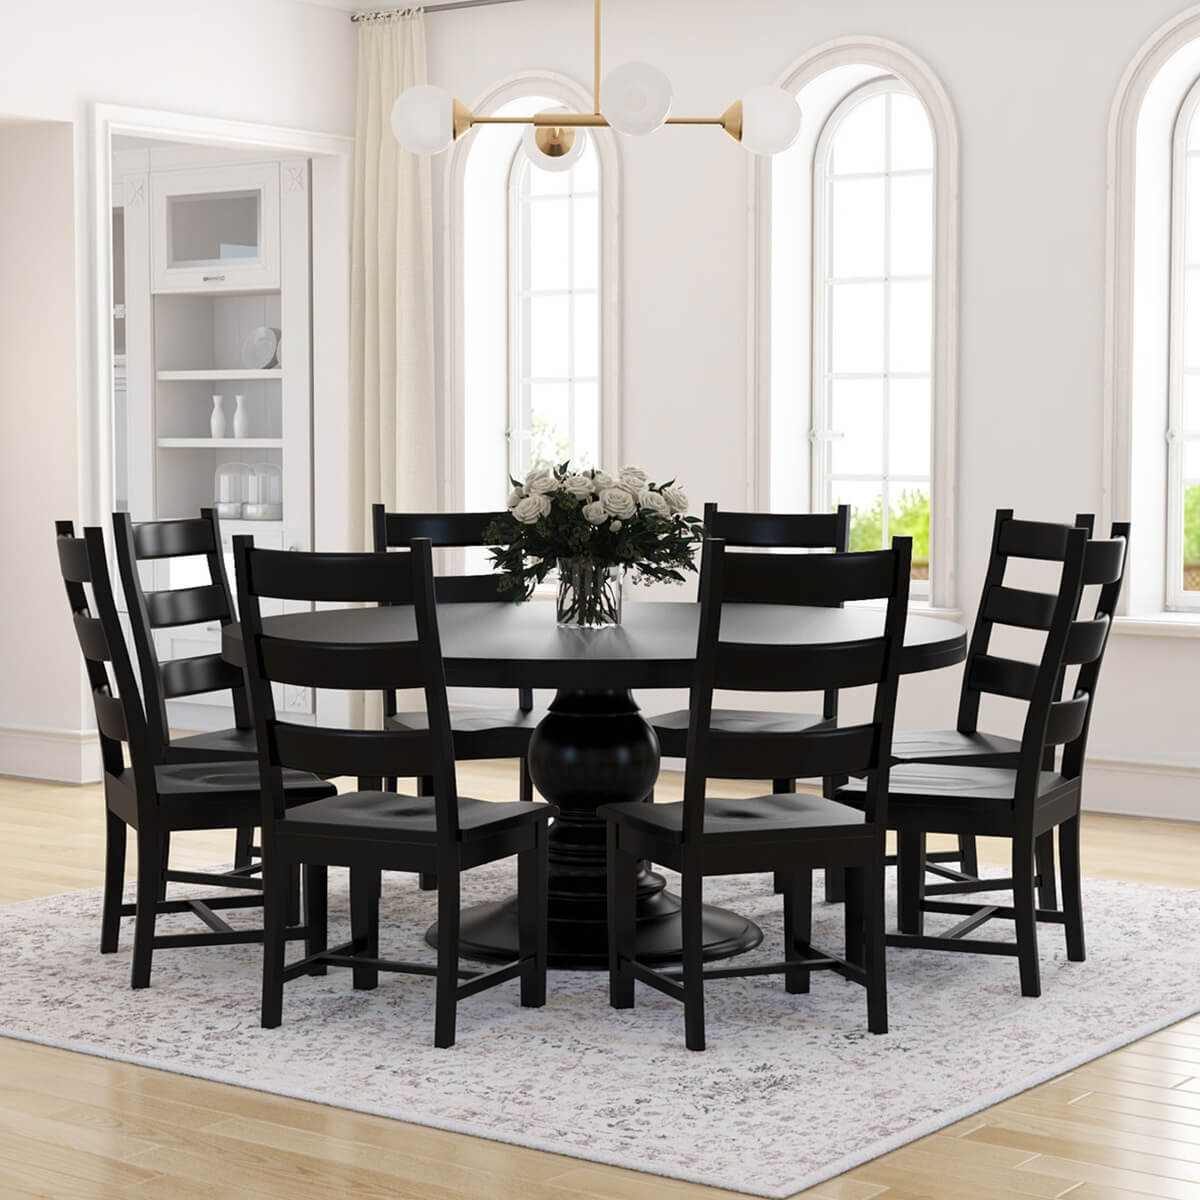 Nottingham rustic solid wood black round dining room table set - Black dining room tables ...